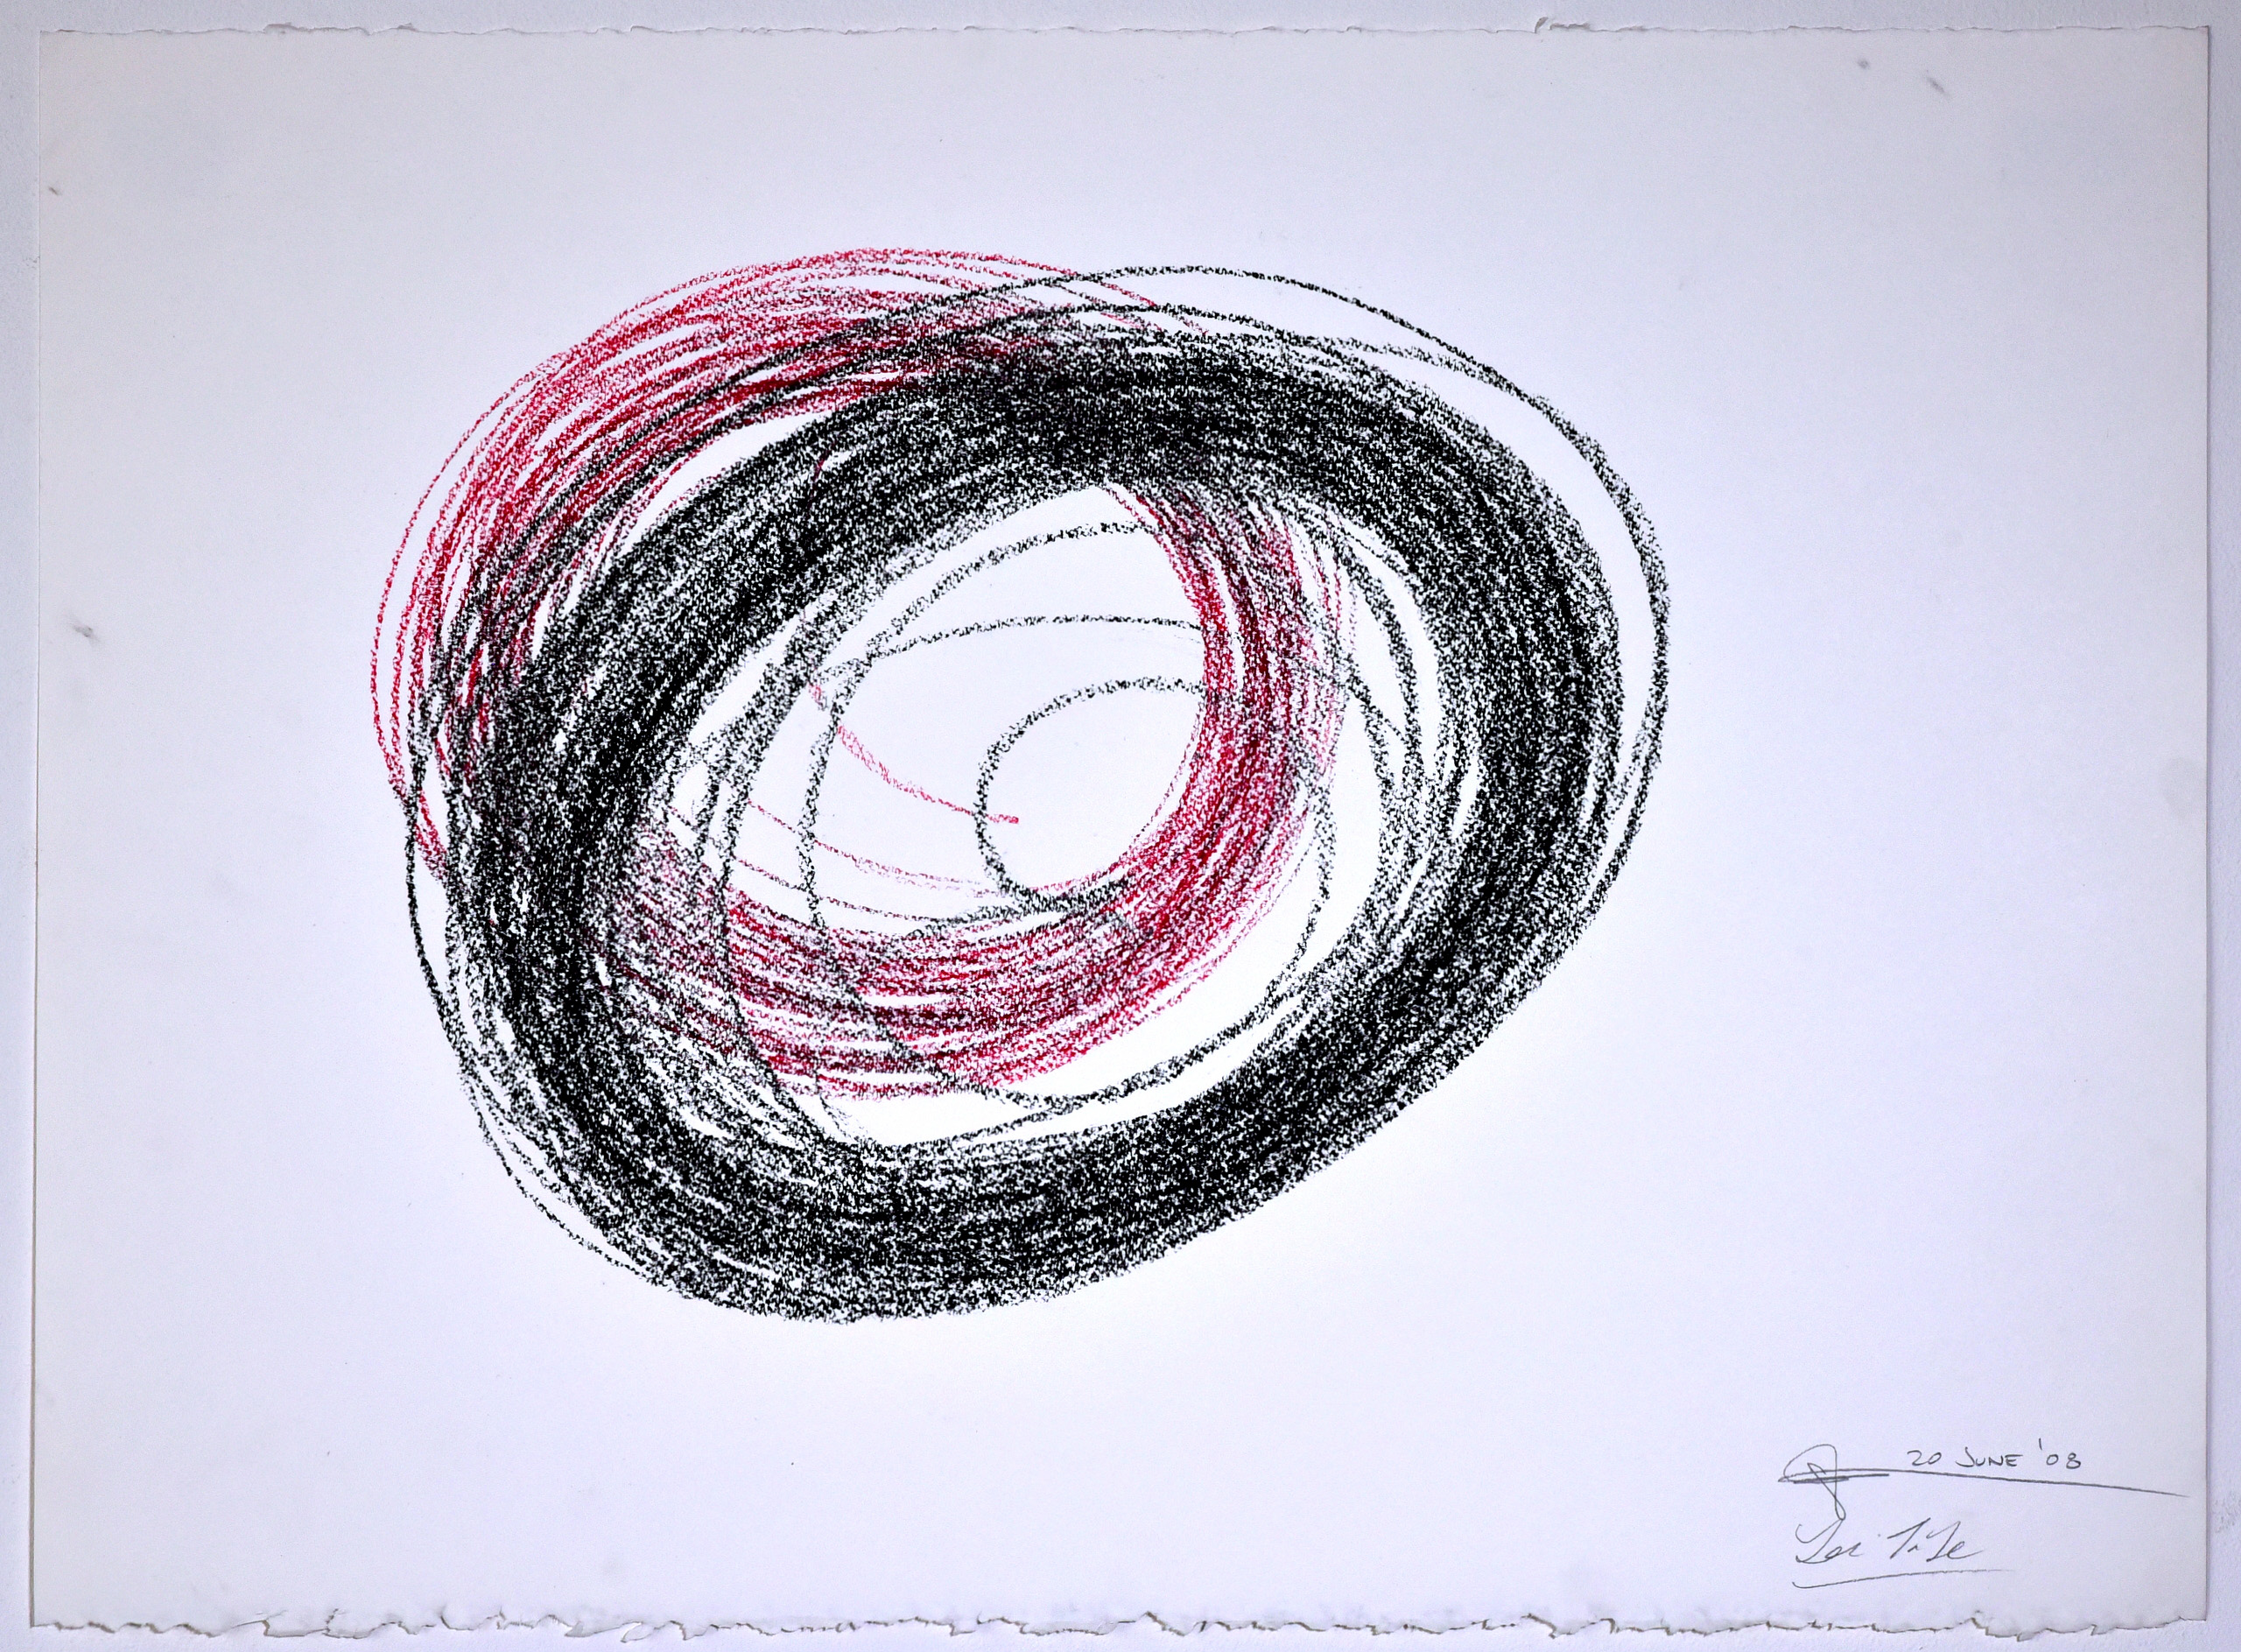 """Automatic Drawing #11, 20 June 2008, conte crayon on paper, 22x30"""", Lee Tuyet Le & Glenn Zucman"""